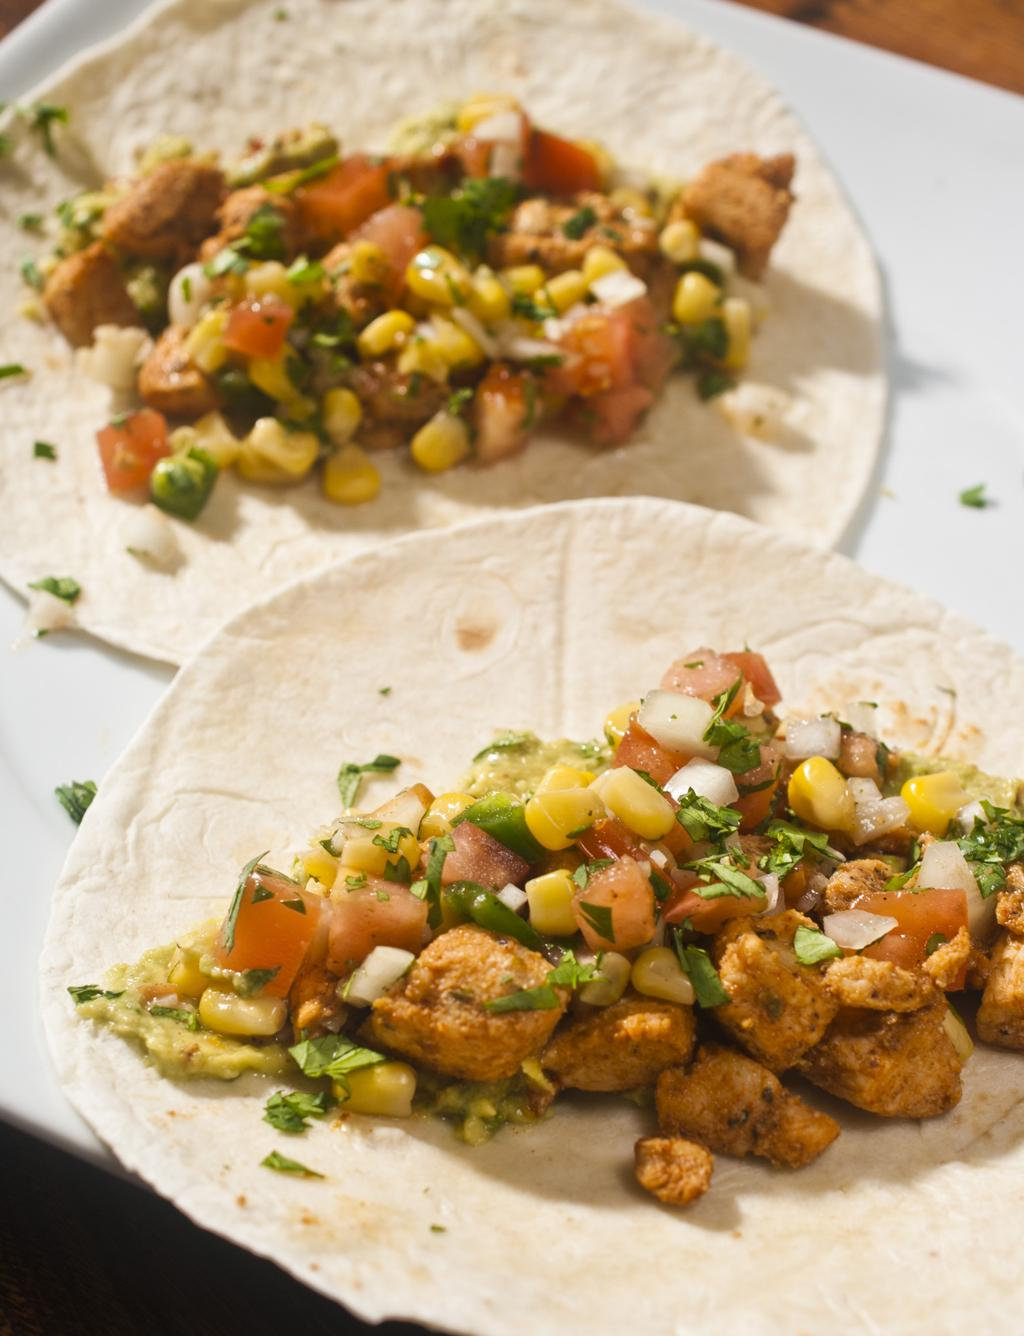 Smoky Chicken Tortillas With corn salsa and sun dried tomato guacamole